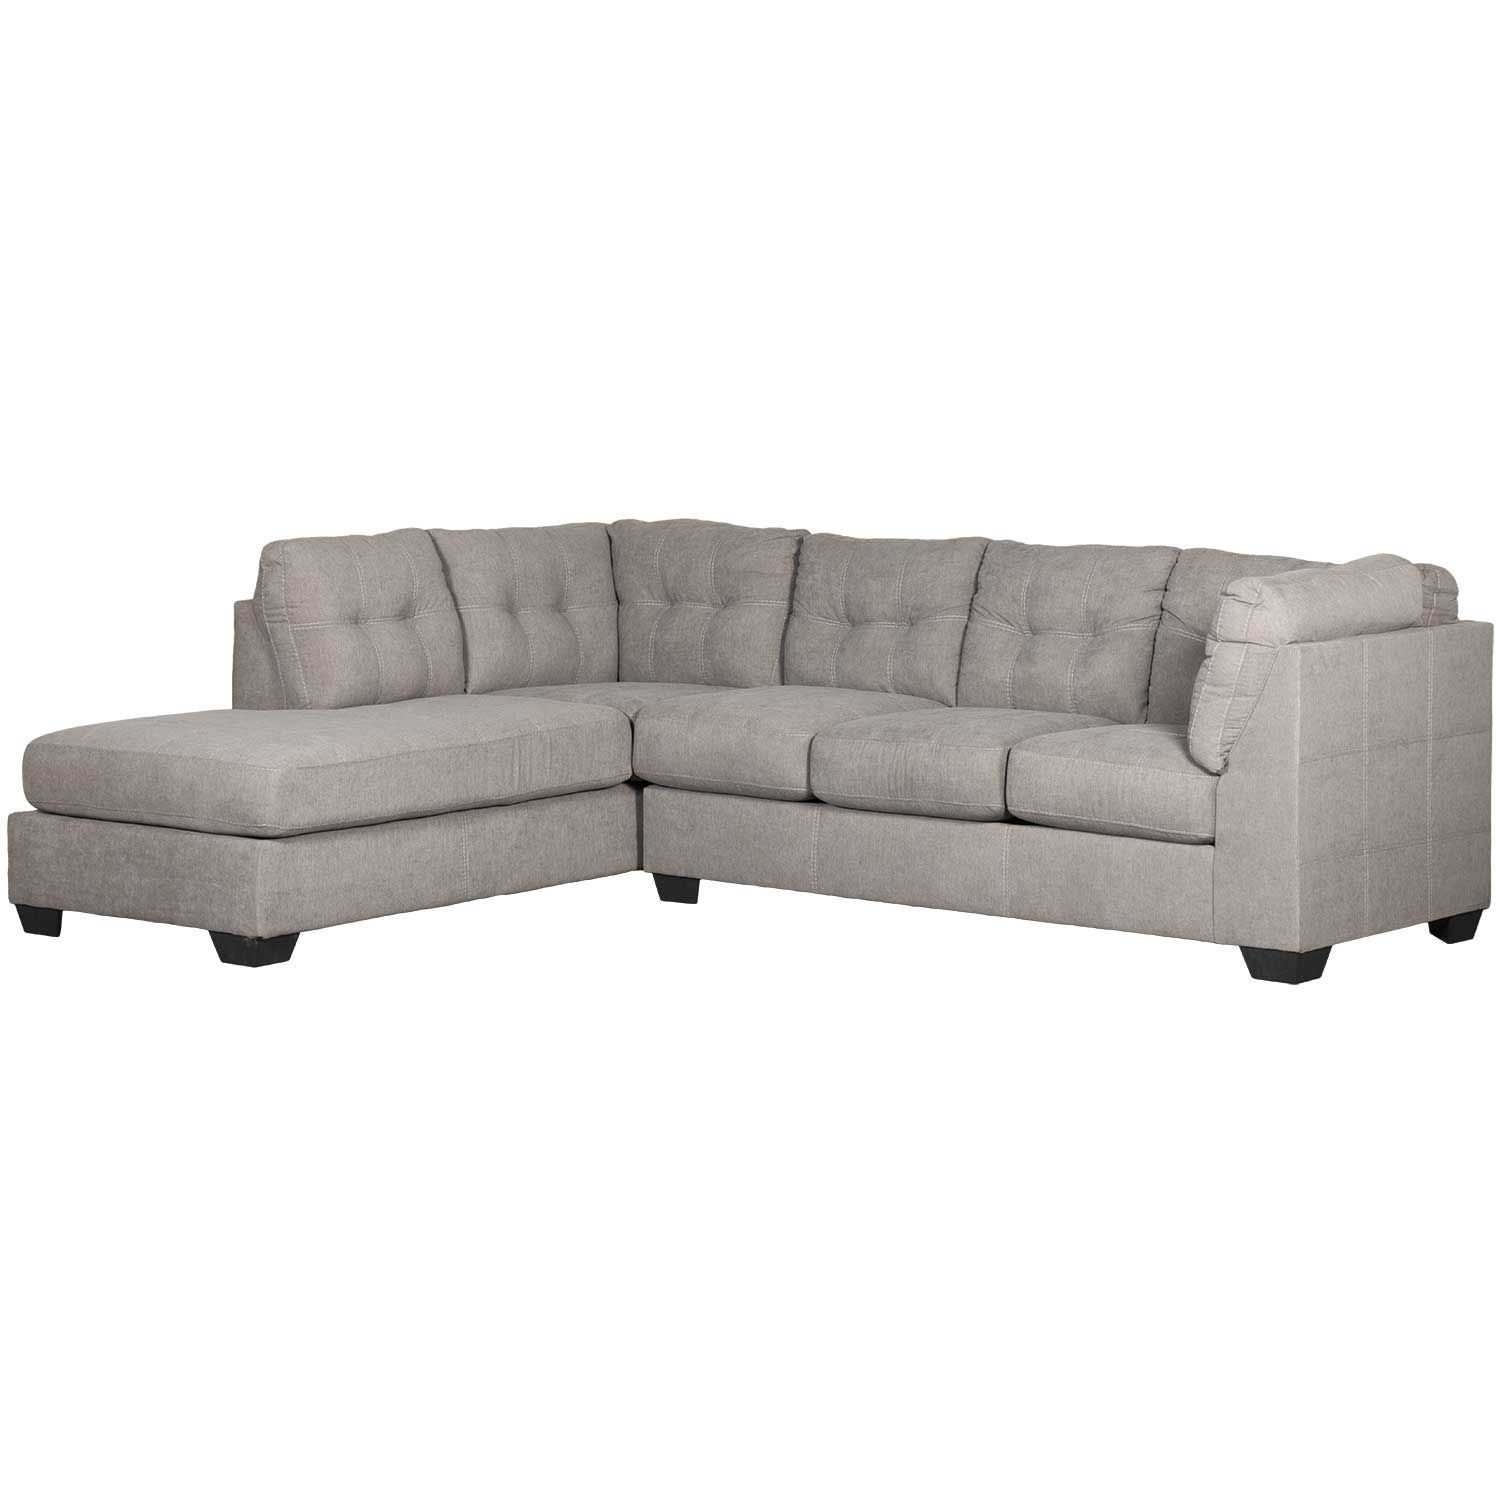 Maier Charcoal 2 Piece Sectional With Laf Chaise | 4520016/67 with Arrowmask 2 Piece Sectionals With Raf Chaise (Image 21 of 30)